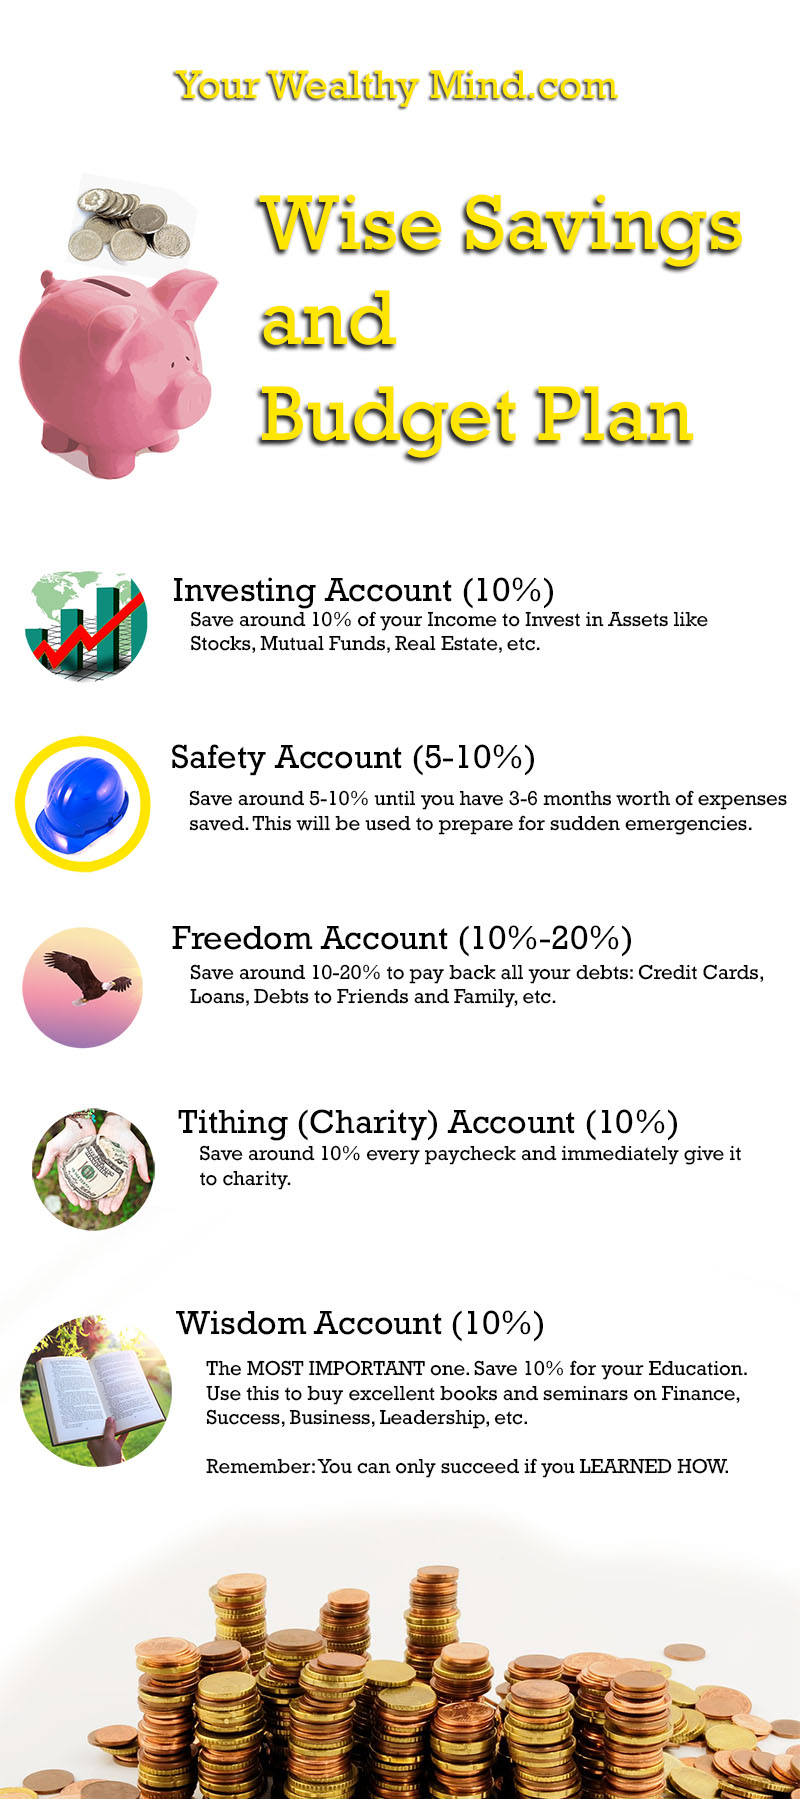 Your Wealthy Mind Savings and Budget Plan Infographic